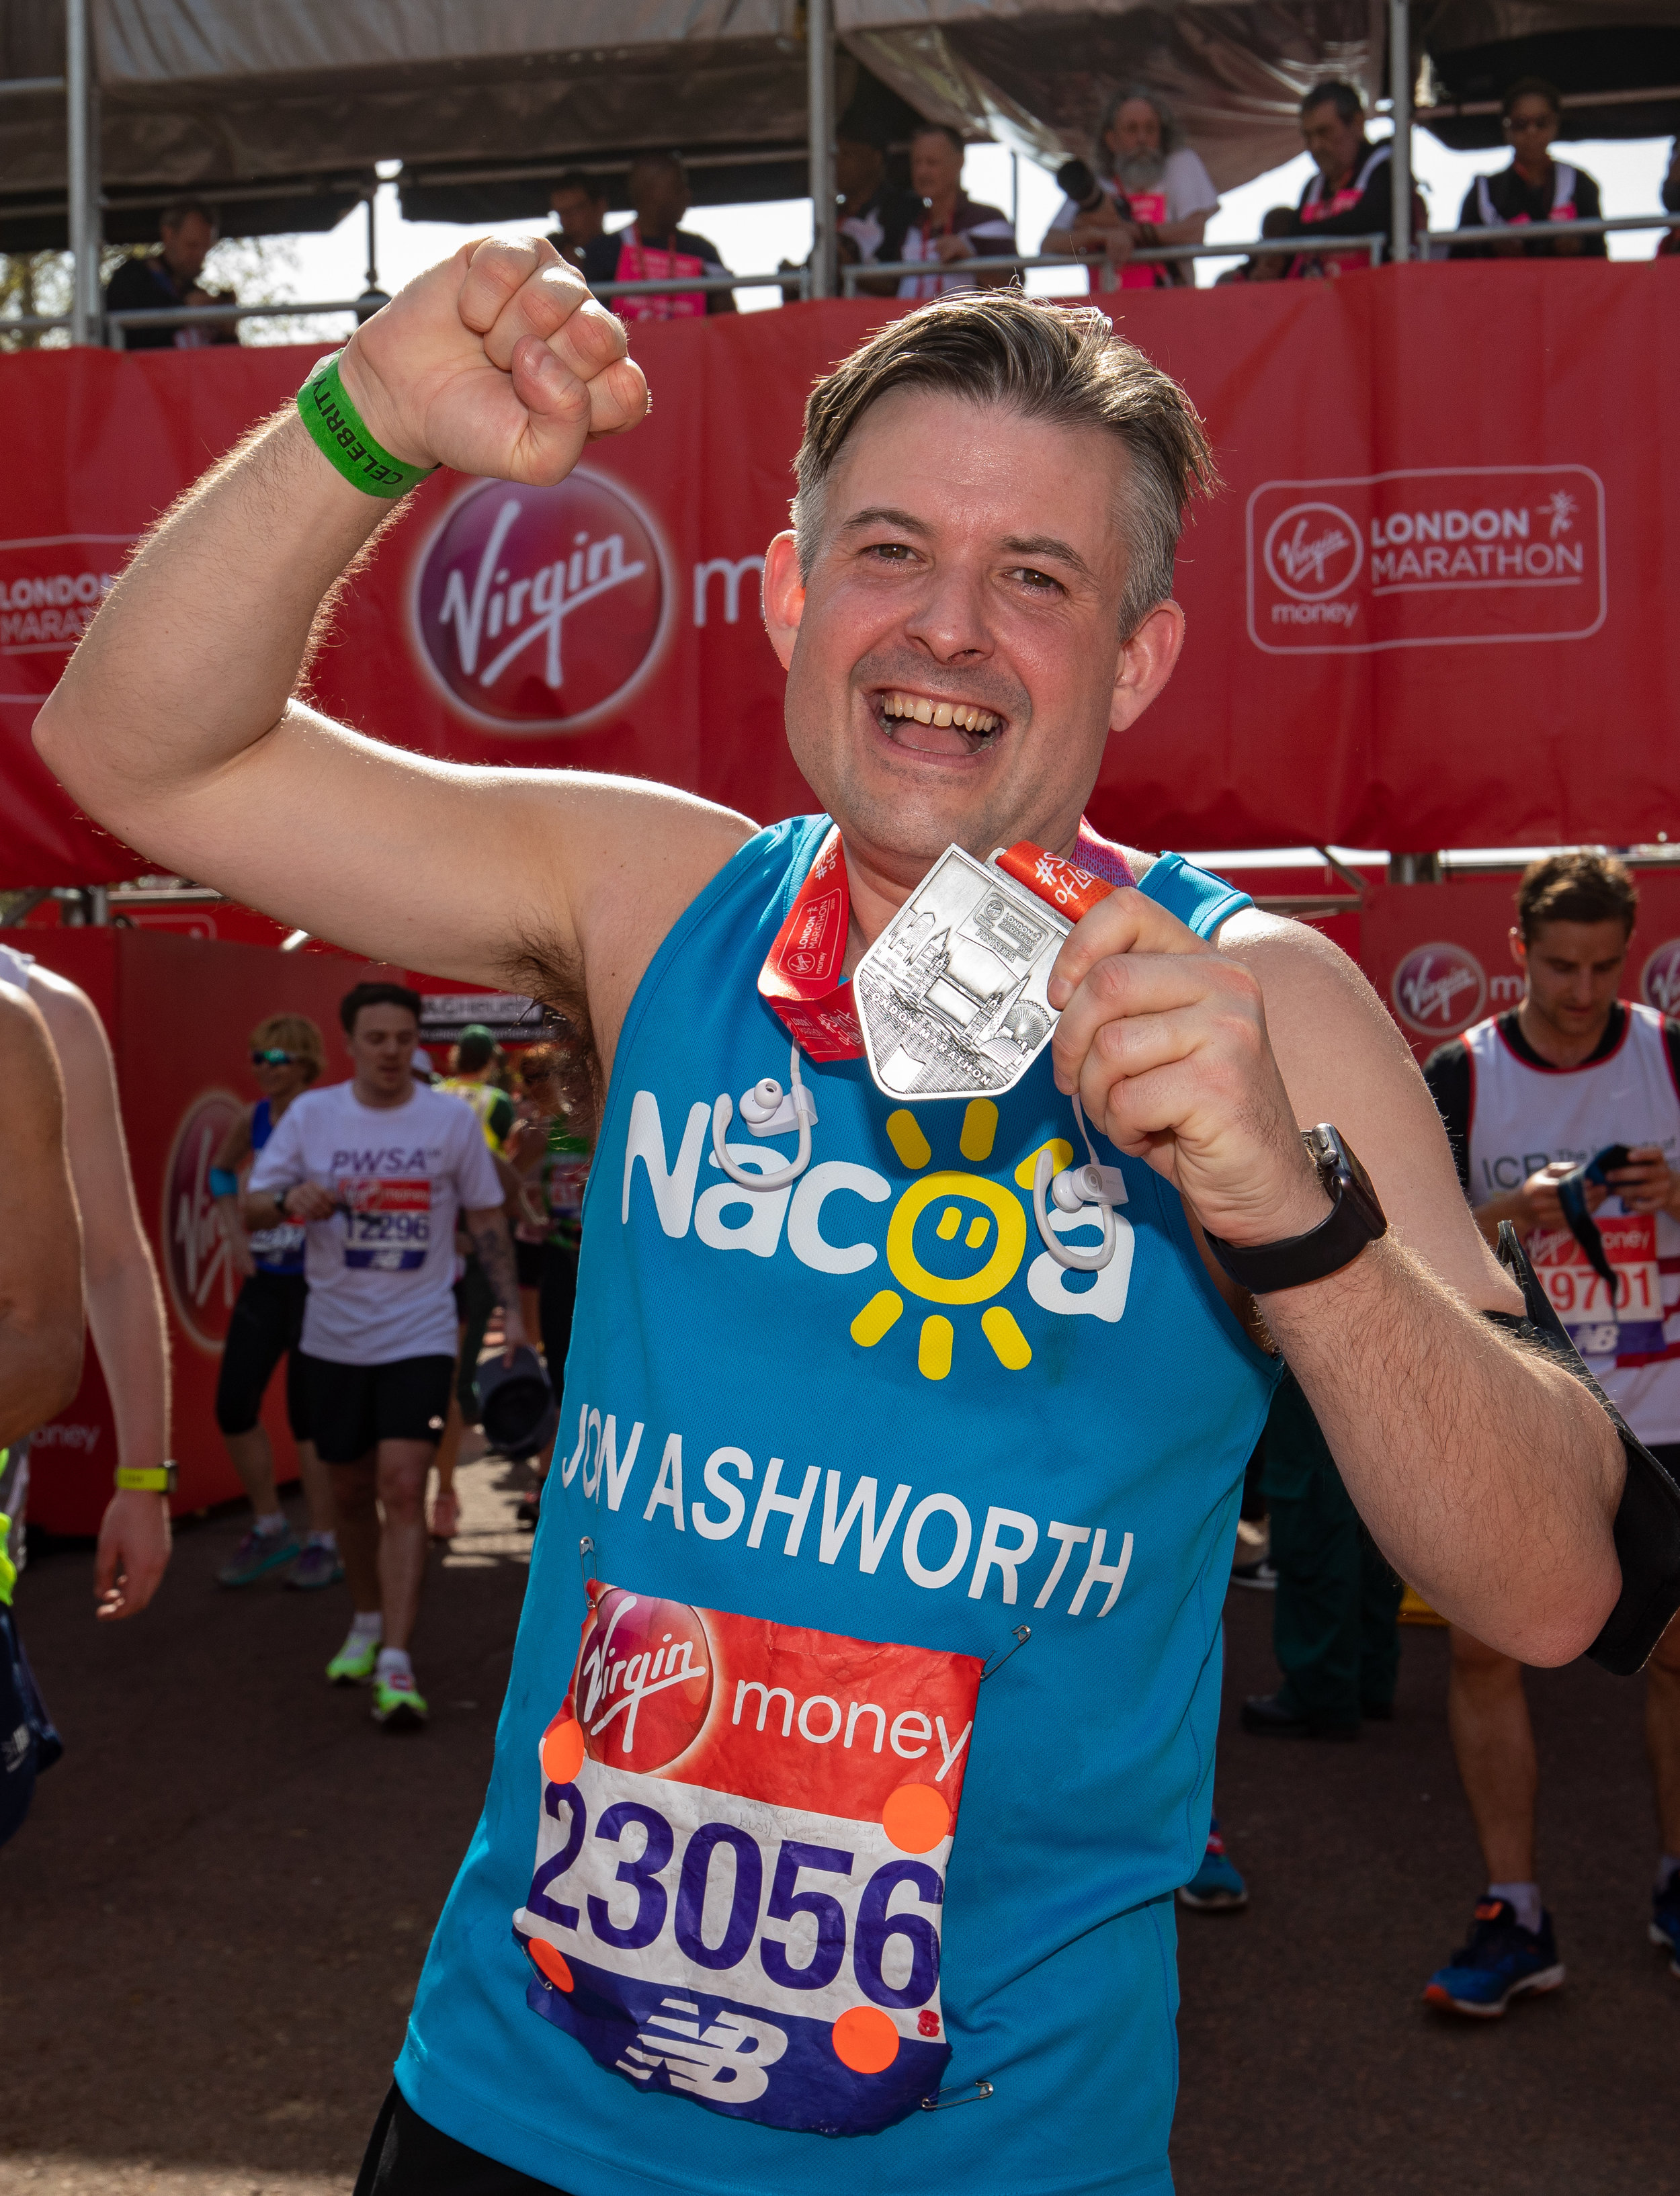 Jon will be running the London Marathon for the third time on Sunday 28 April for The National Association for Children of Alcoholics - Wednesday April 17 2019